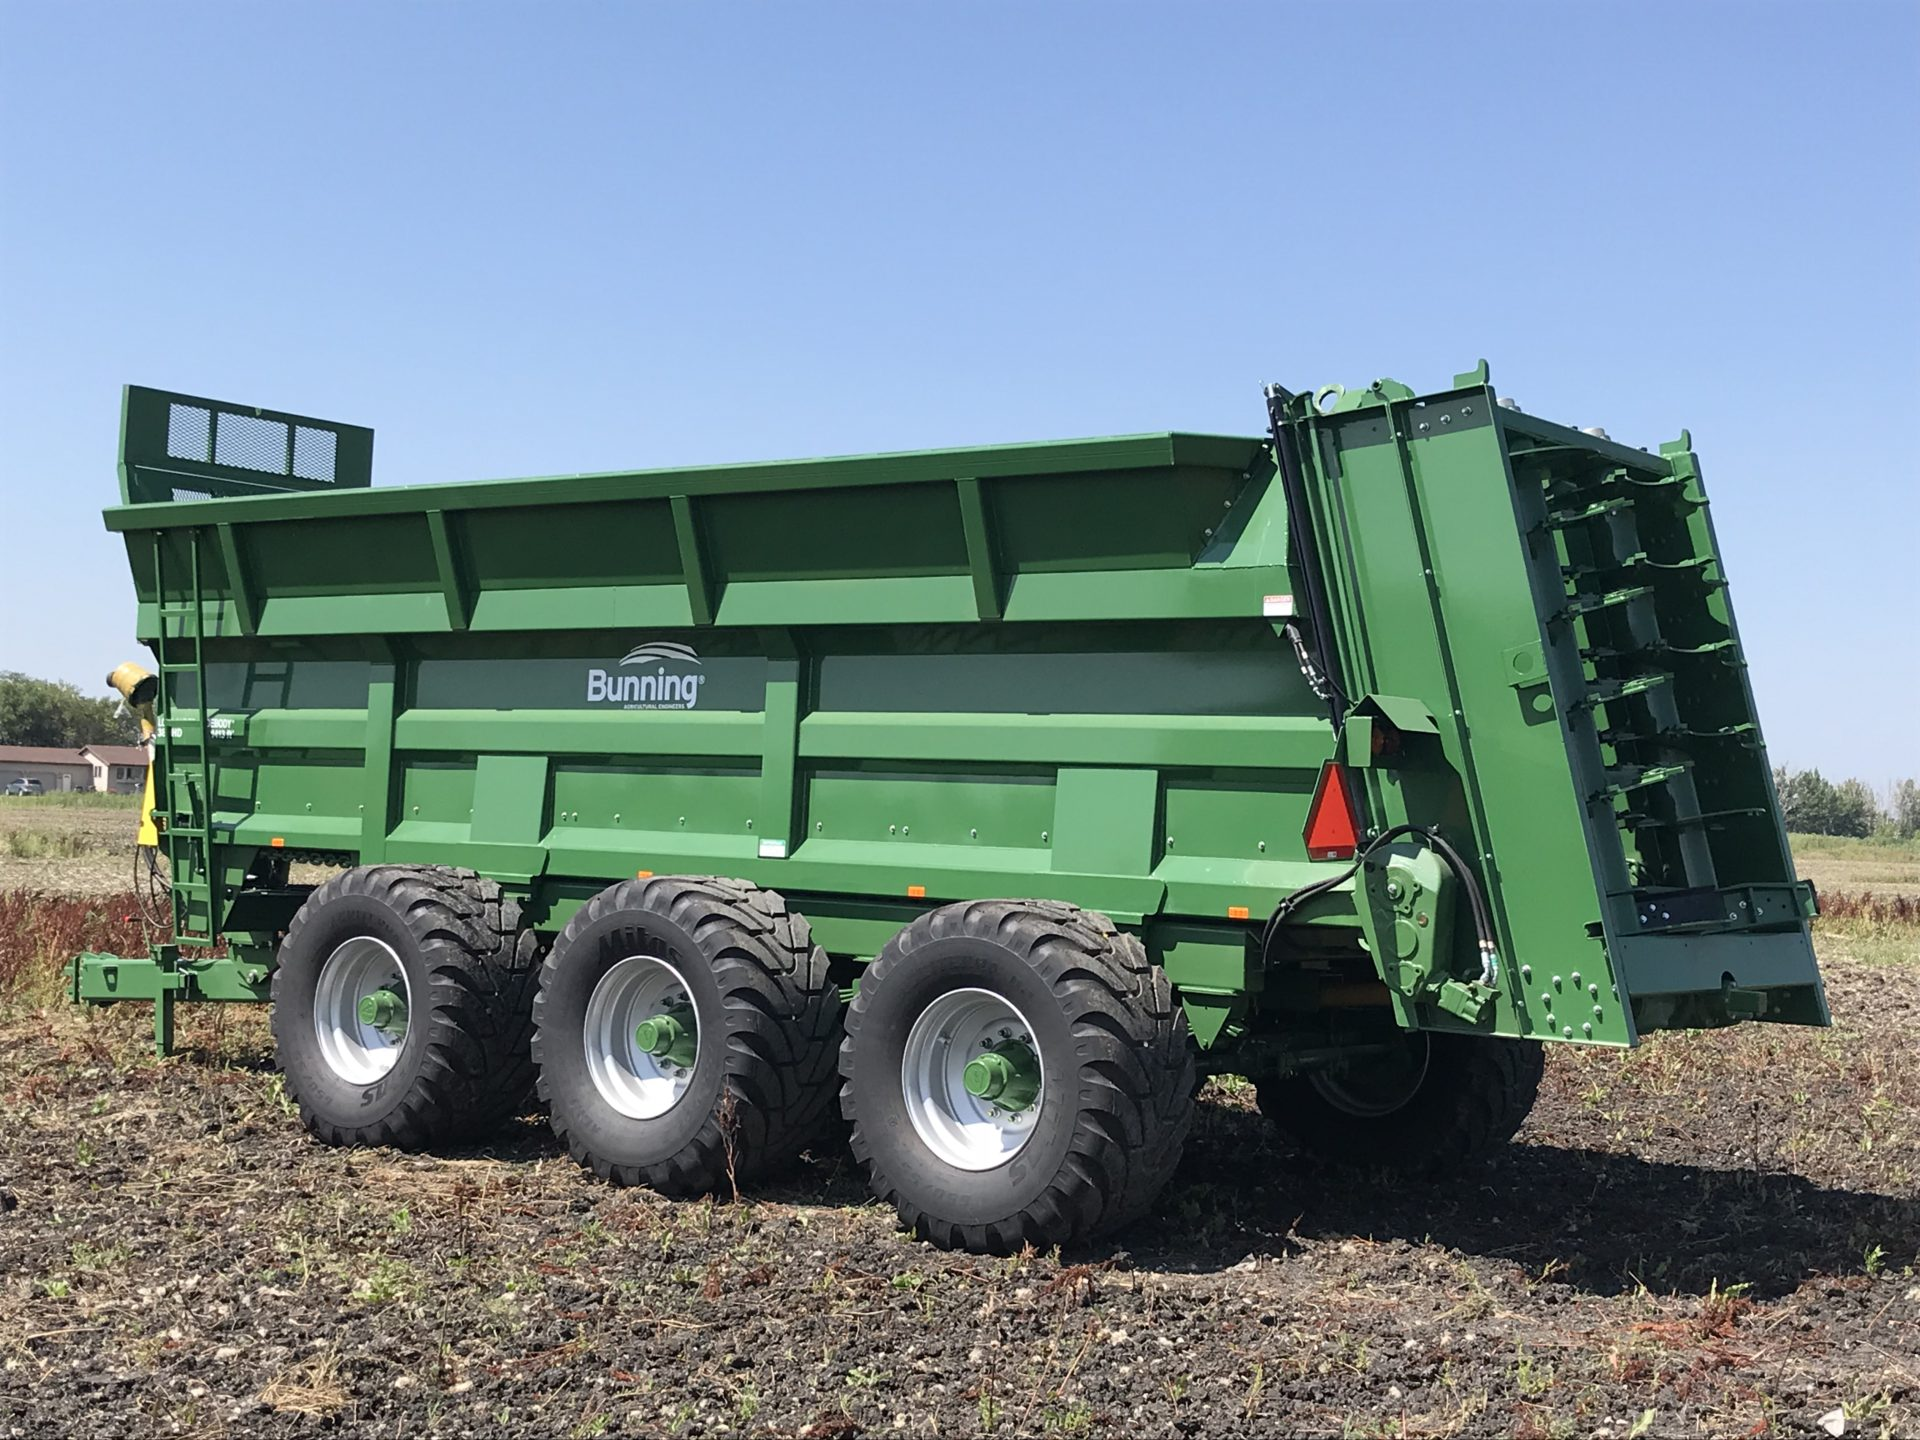 Lowlander 380 HD TVA Widebody with slurry door, 530mm bolt on extensions, lift off augers, spinner deck ready, stone guard extension, sprung suspension, front and rear steering axles with 650/55 R26.5 wheels